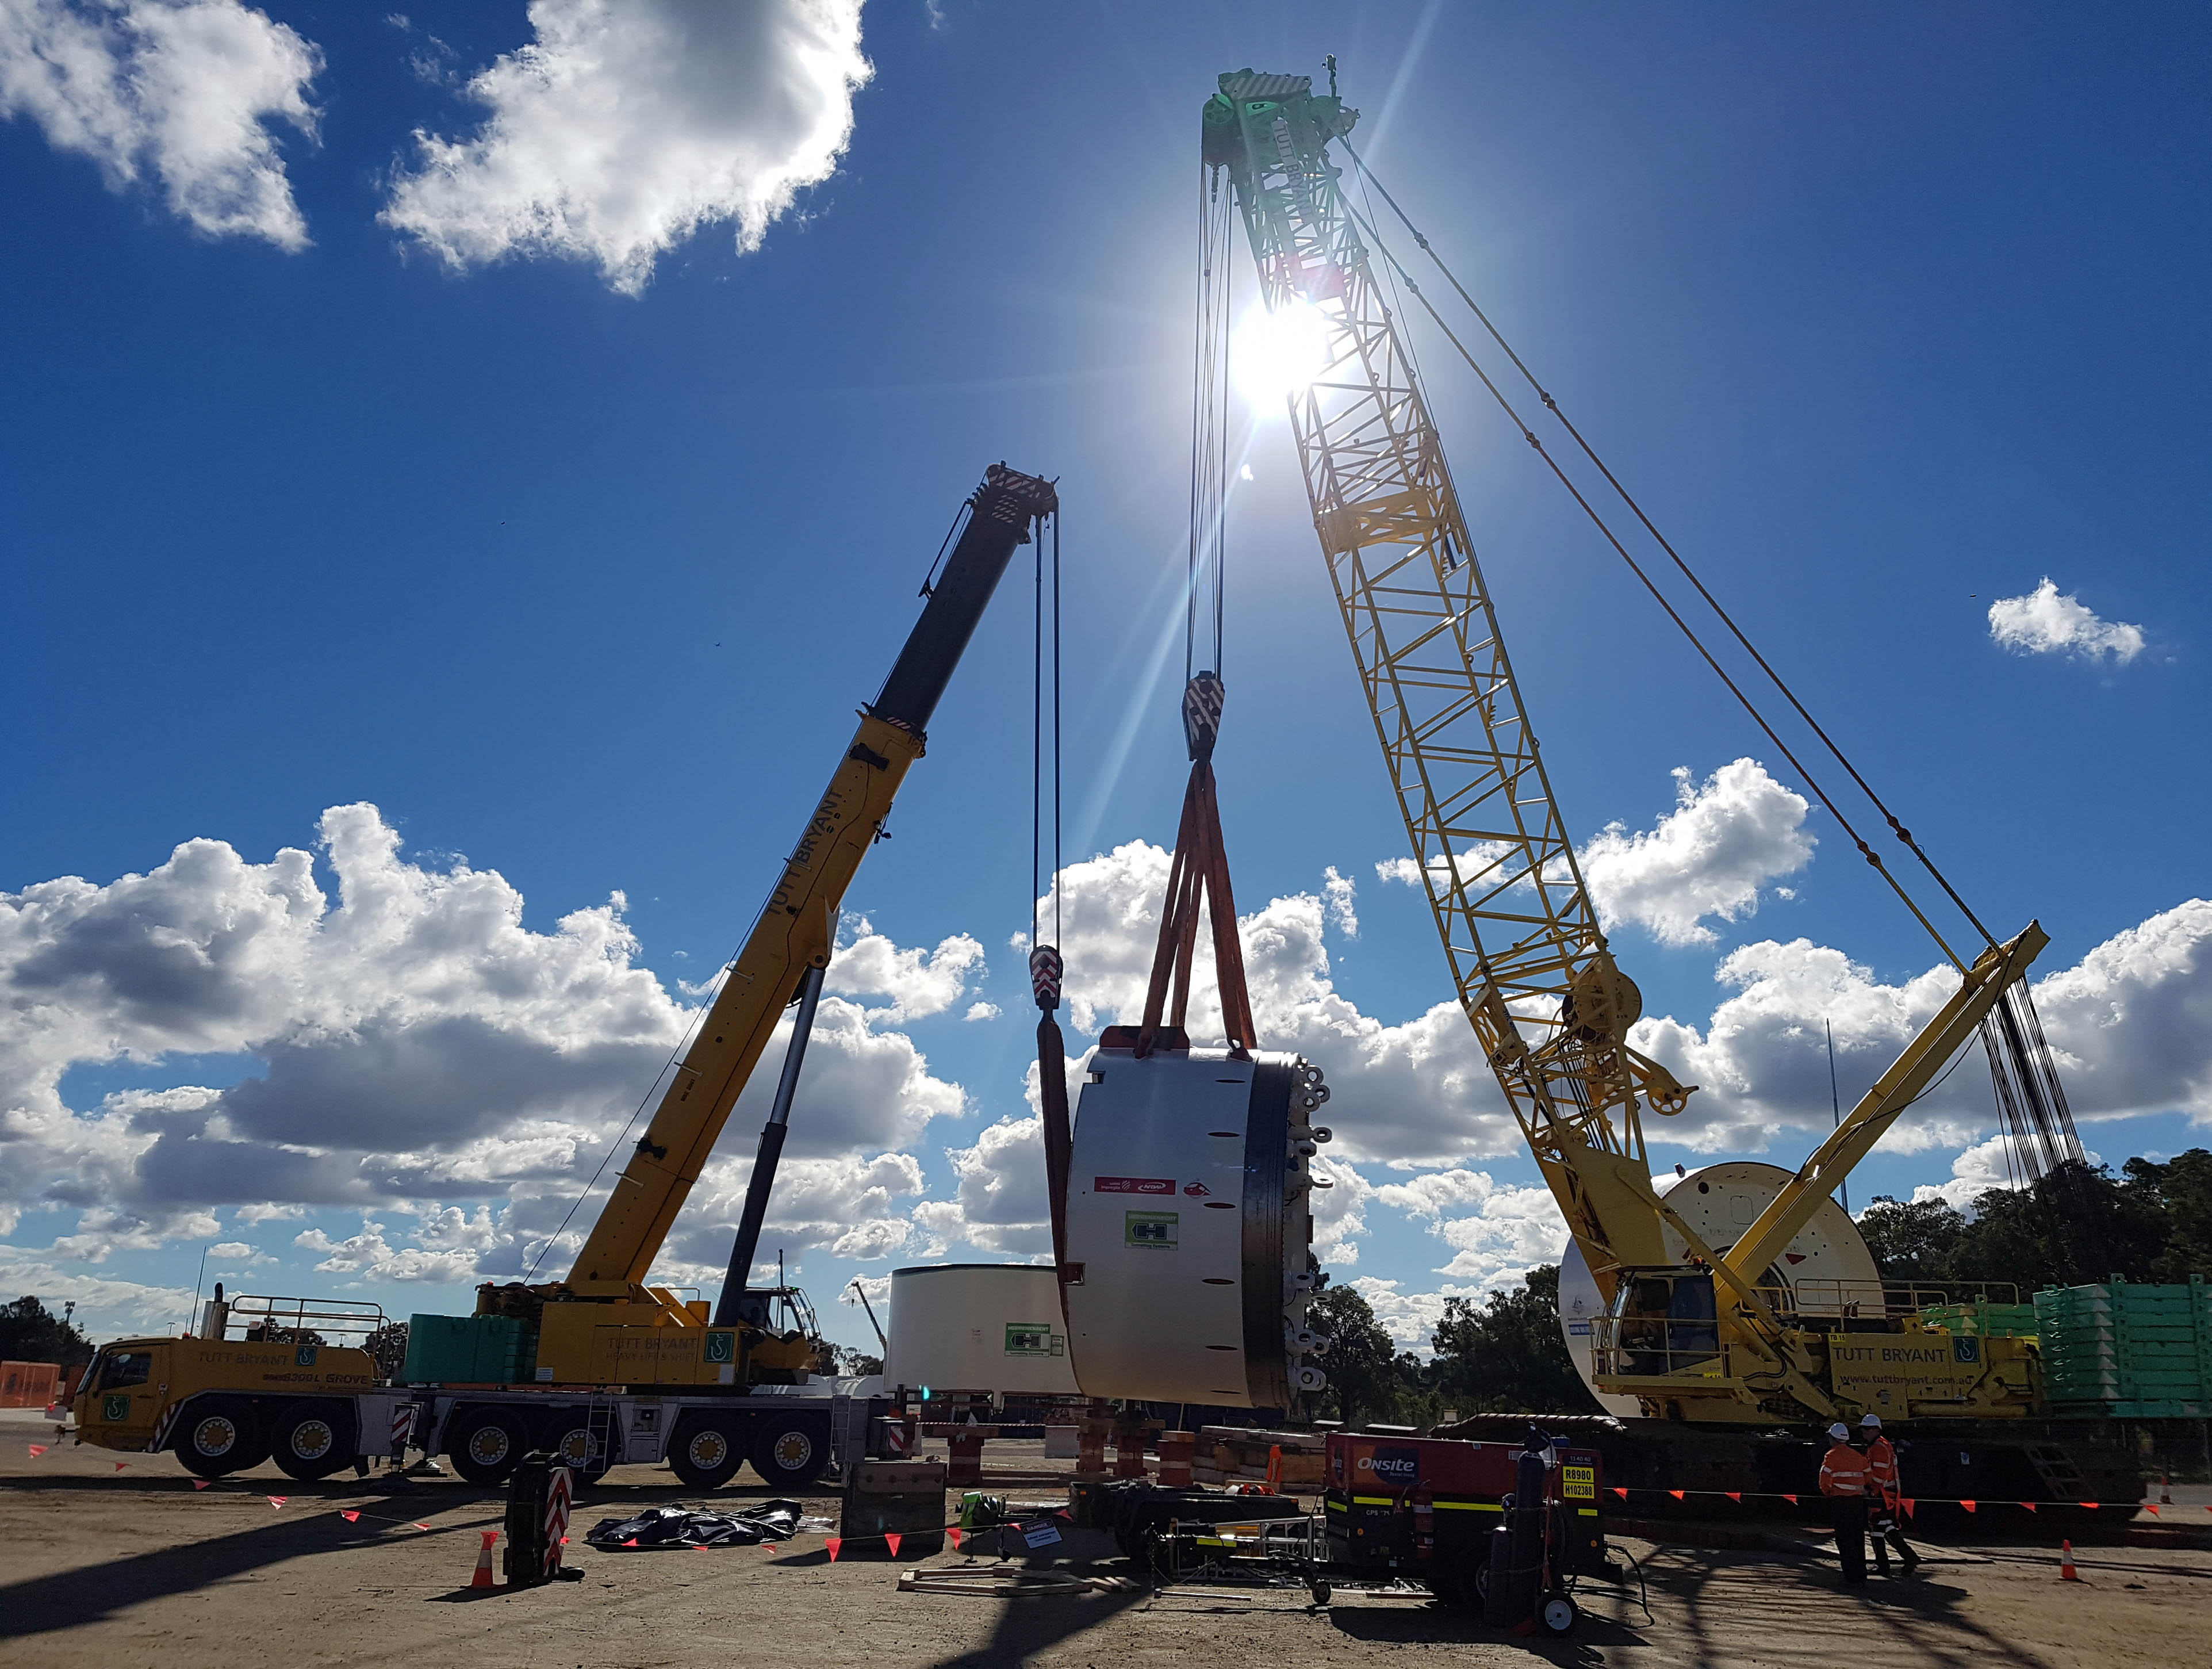 The Forrestfield-Airport Link will be a new subway system linking downtown Perth with the Western Australian city's airport. Tutt Bryant Heavy Lift & Shift provided the lifting power to build one of the Tunnel Boring Machine (TBM) units, and sent its 650 t capacity Manitowoc MLC650 to handle the task.